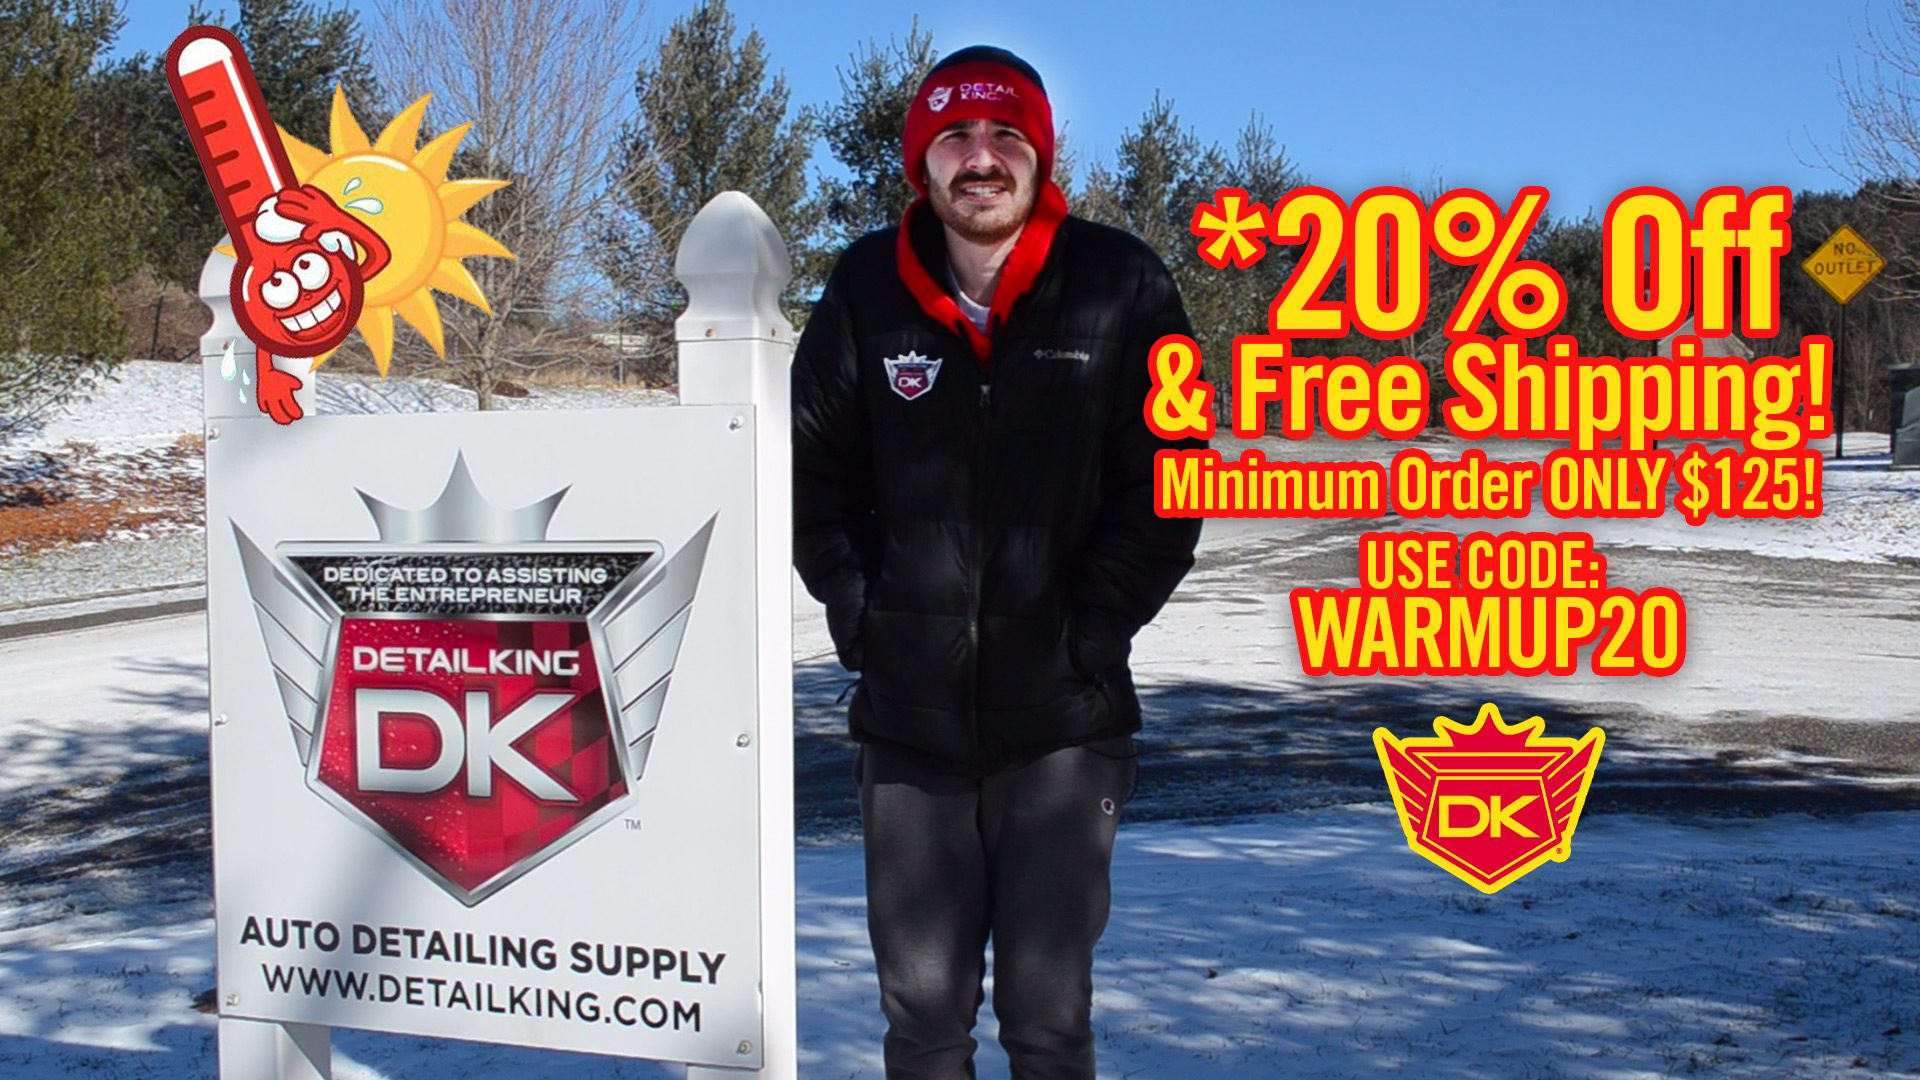 Winter Warm Up Sale! – *20% Off & Free Shipping on Most DK Products! – Friday THRU MONDAY!